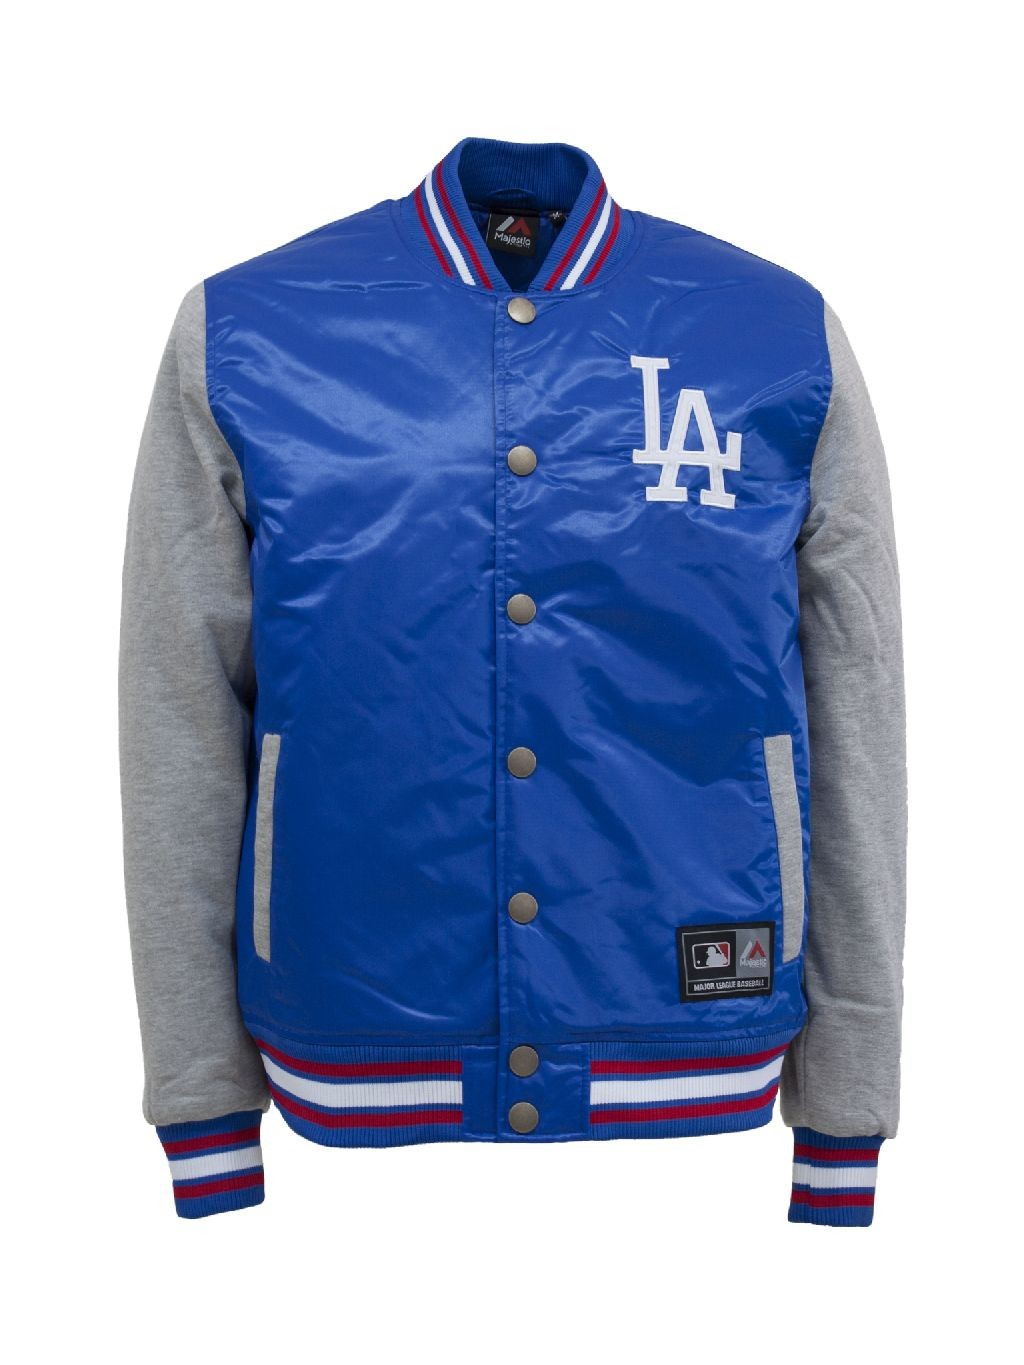 Majestic athletic Giacca college creech mixed fabric varsity